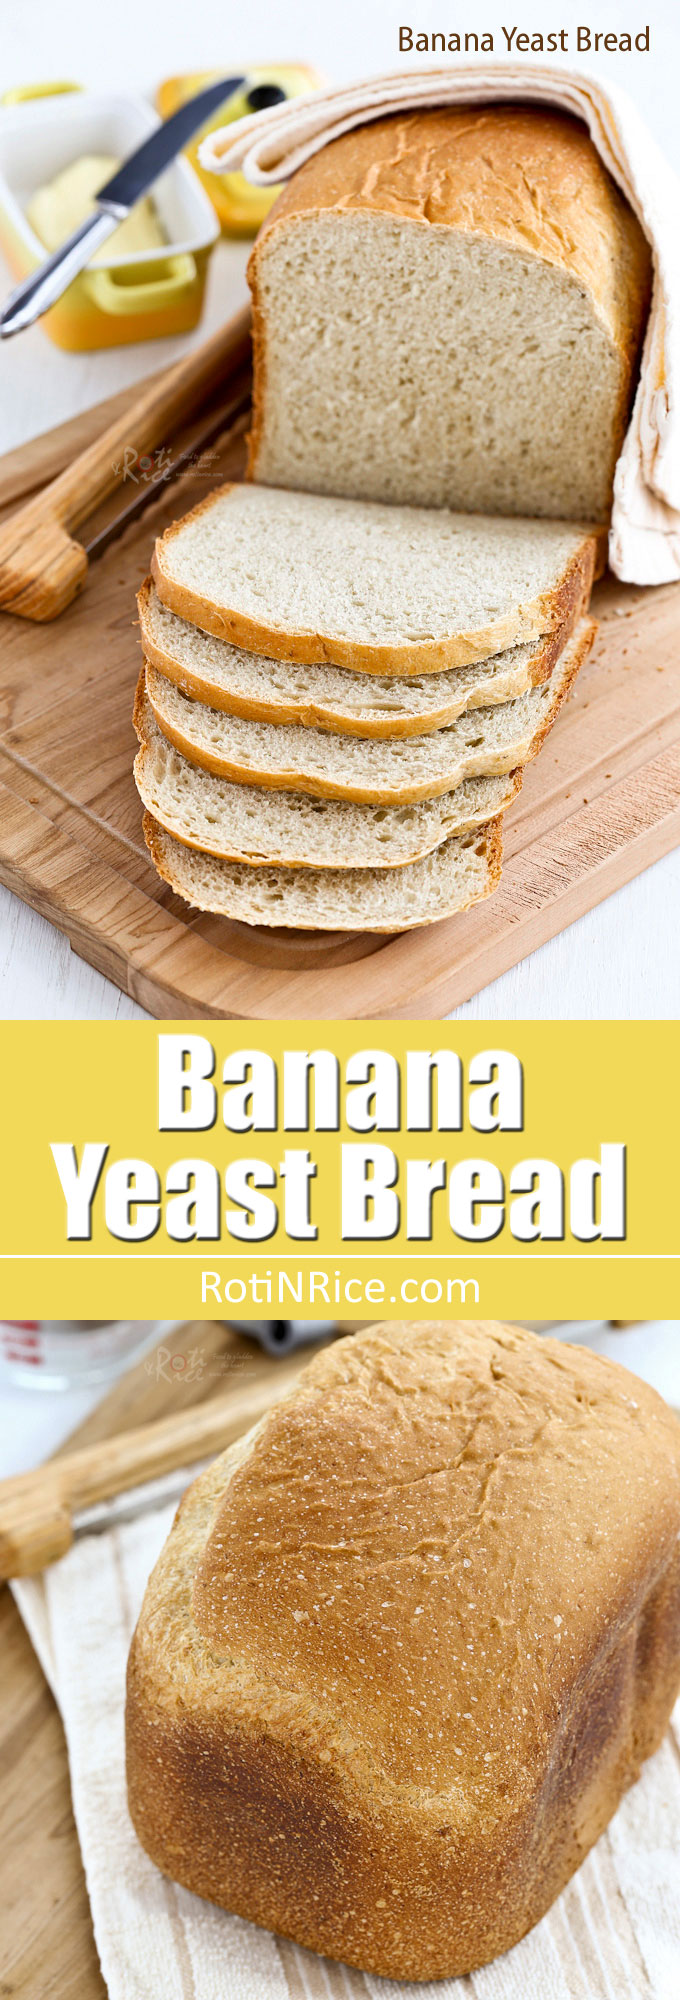 Fragrant and tender Banana Yeast Bread with a hint of cinnamon. Use ripe bananas for best results. Very easy in the bread machine. | RotiNRice.com